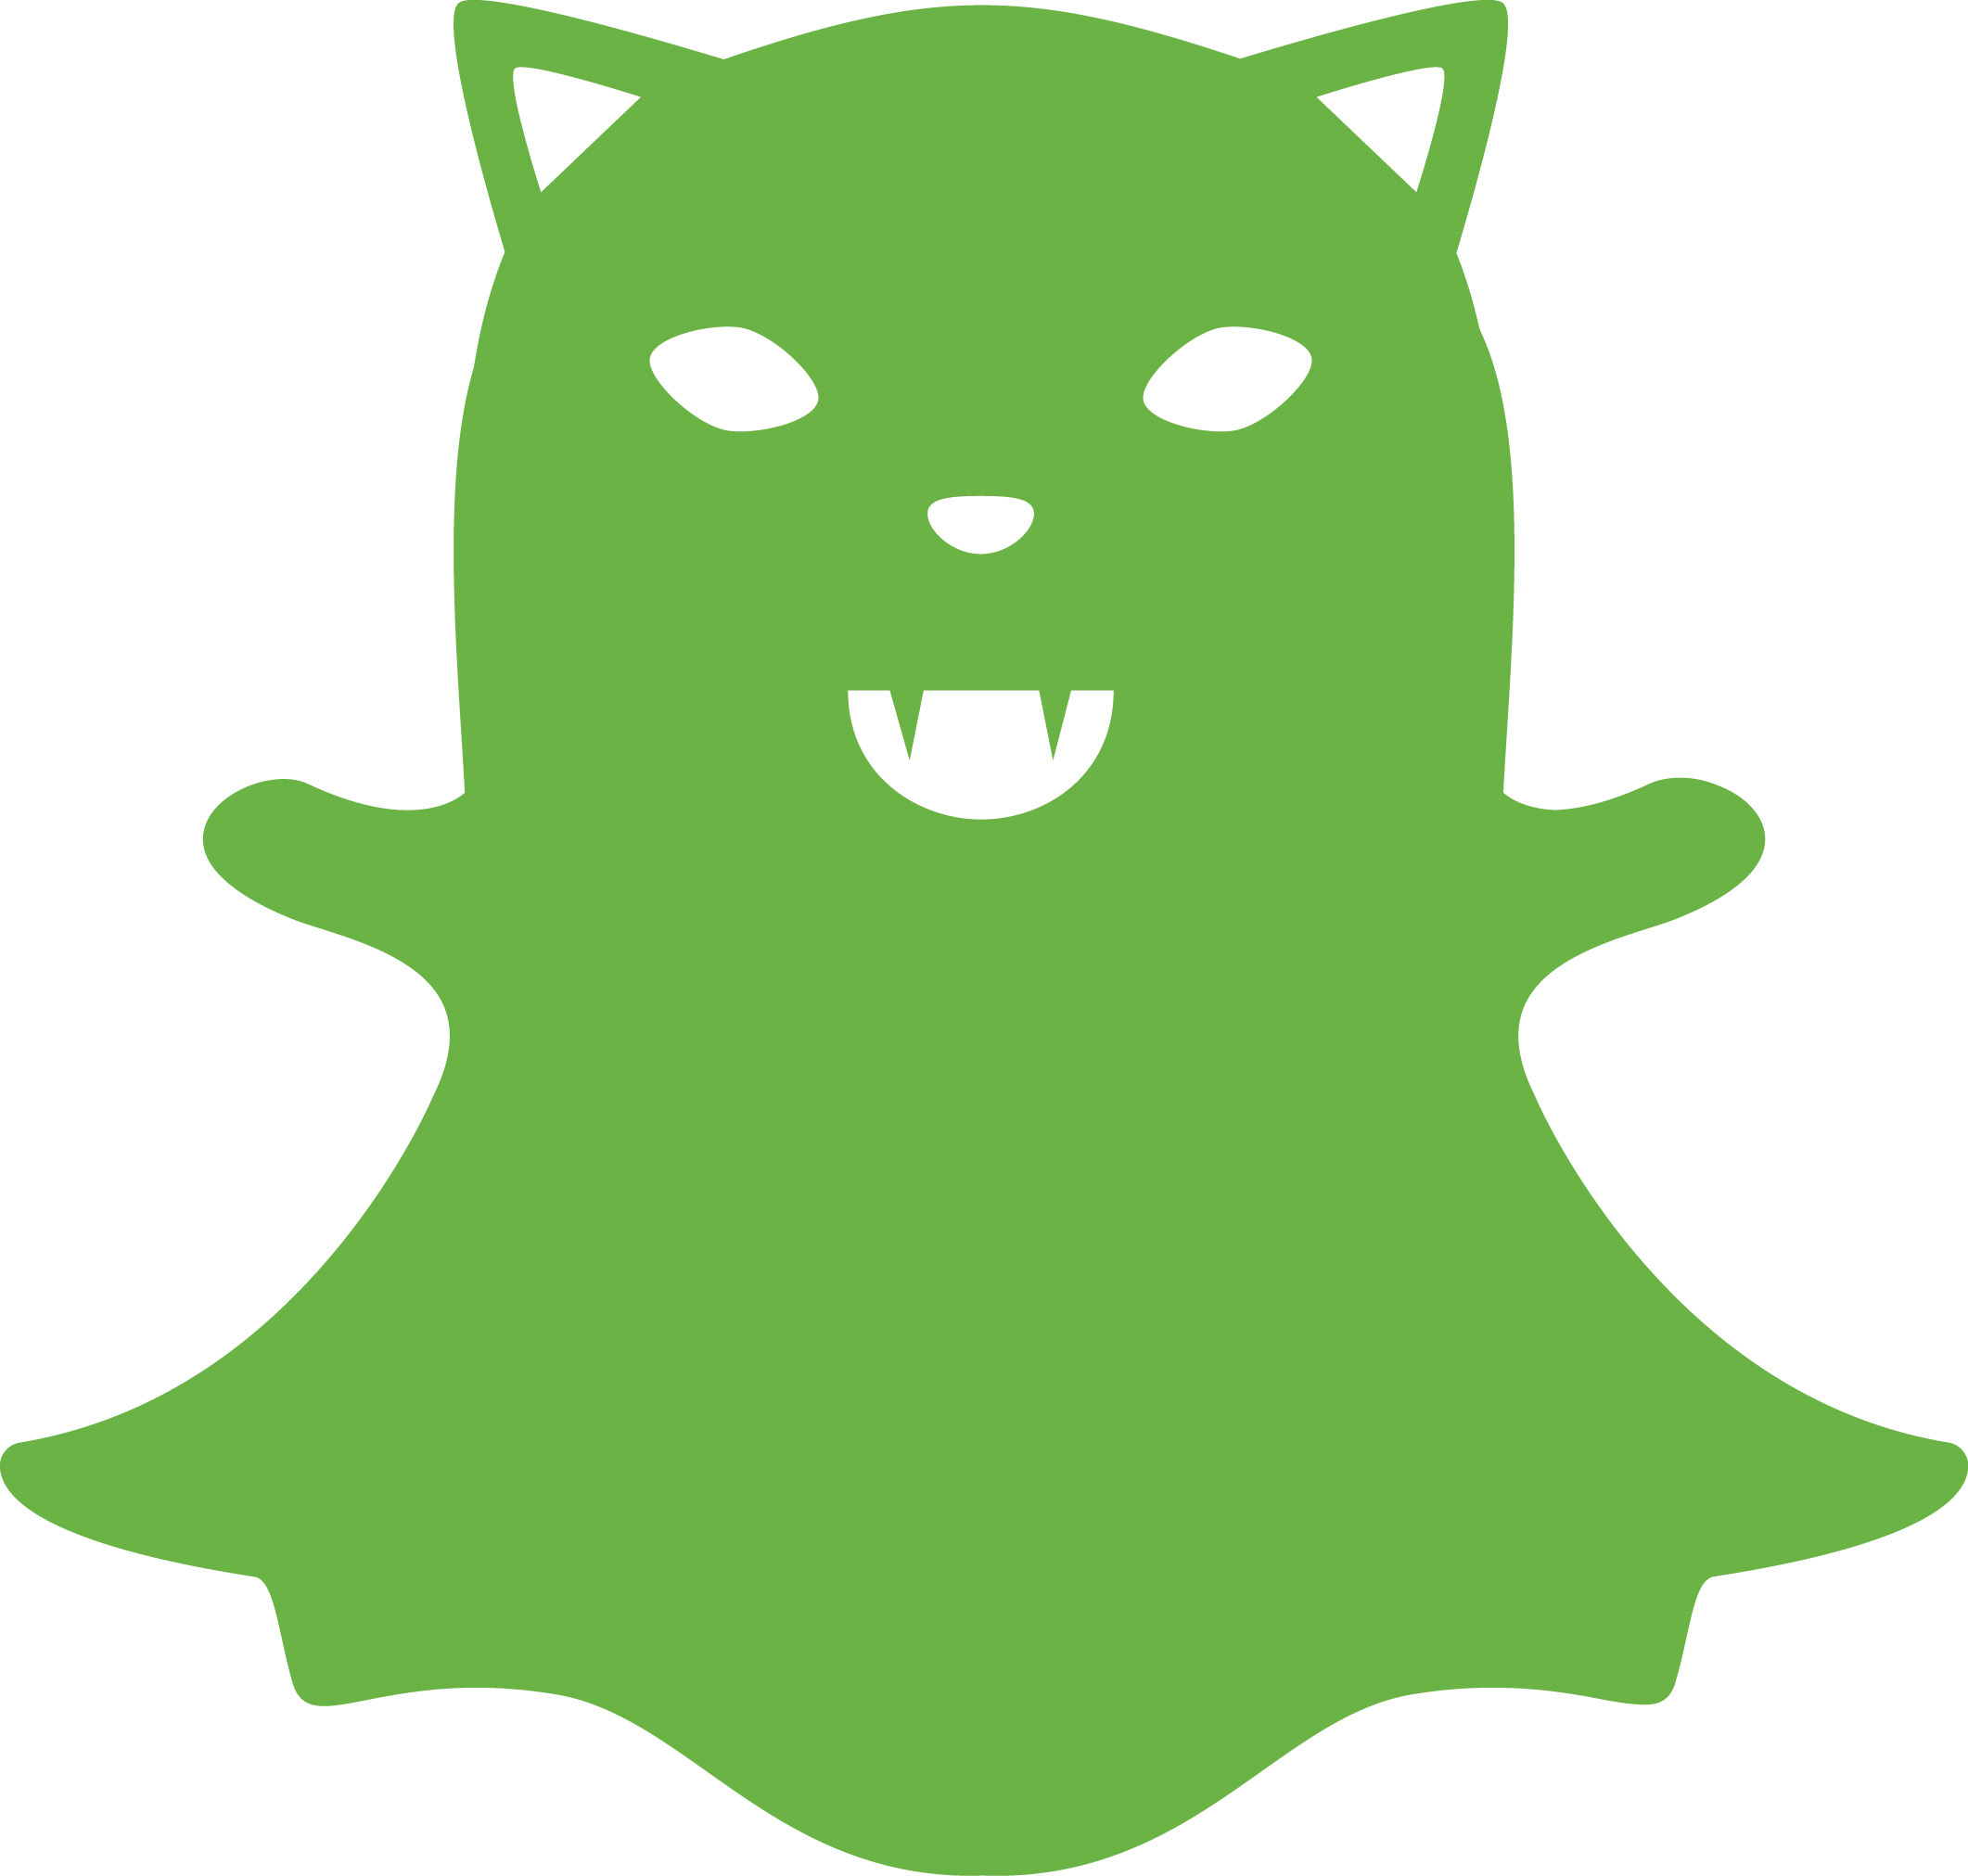 Groupon launches its Snapchat channel -- follow of Groupon.com on Snapchat to get access to an epic Wiz Khalifa deal within the next 7 days that includes airfare to Colorado, tickets to concert at Red Rocks Amphitheatre, hotel accommodations and meet-and-greet with Wiz for $4.20. (Graphic: Business Wire)